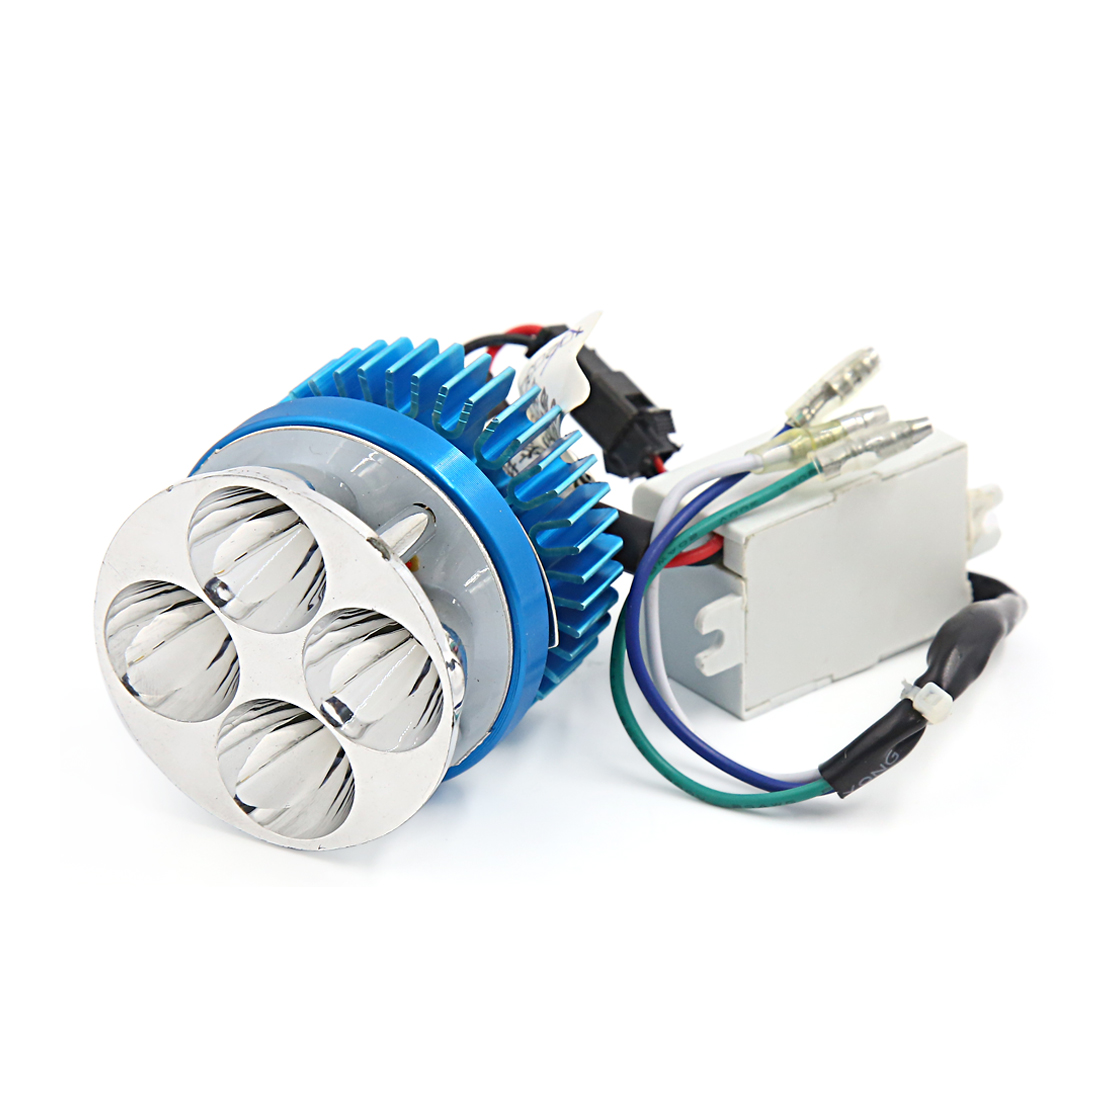 12V-80V 4 White LED Motorcycle Headlight Spotlight Lamp Blue Silver Tone